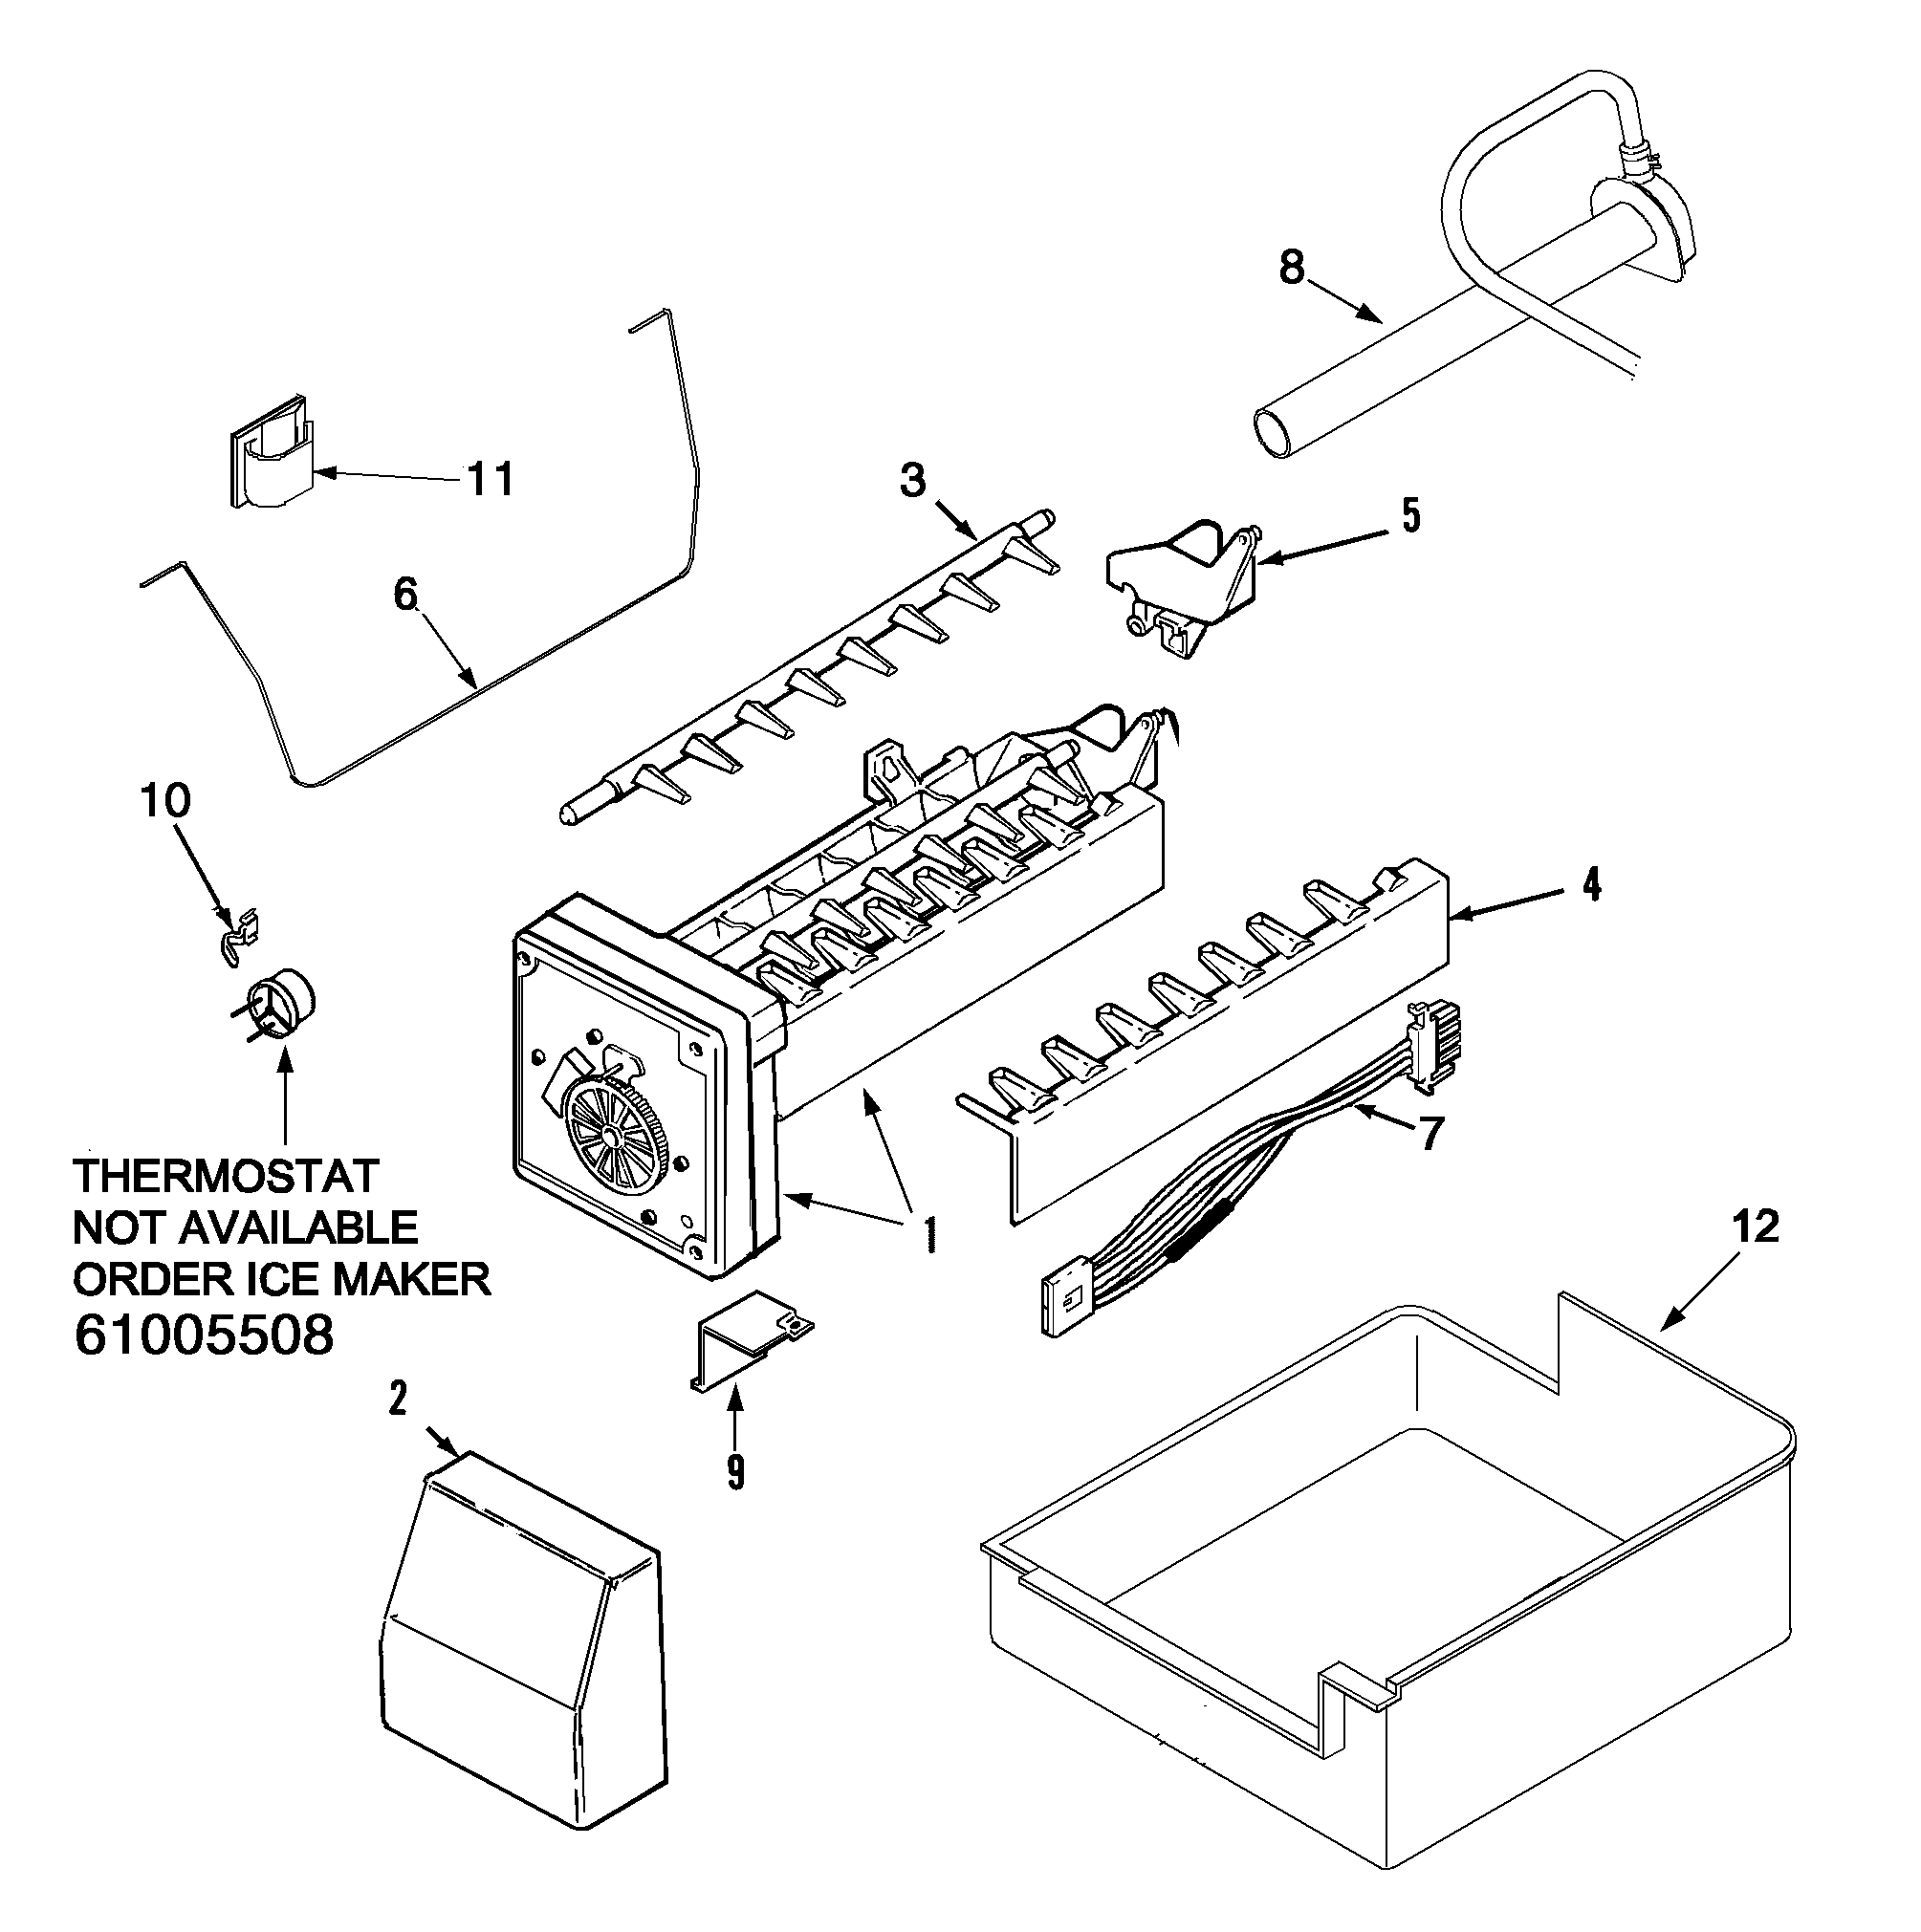 ice maker installation parts diagram and parts list for kenmore ice kenmore refrigerator ice maker schematic get free image about wiring [ 2009 x 2021 Pixel ]